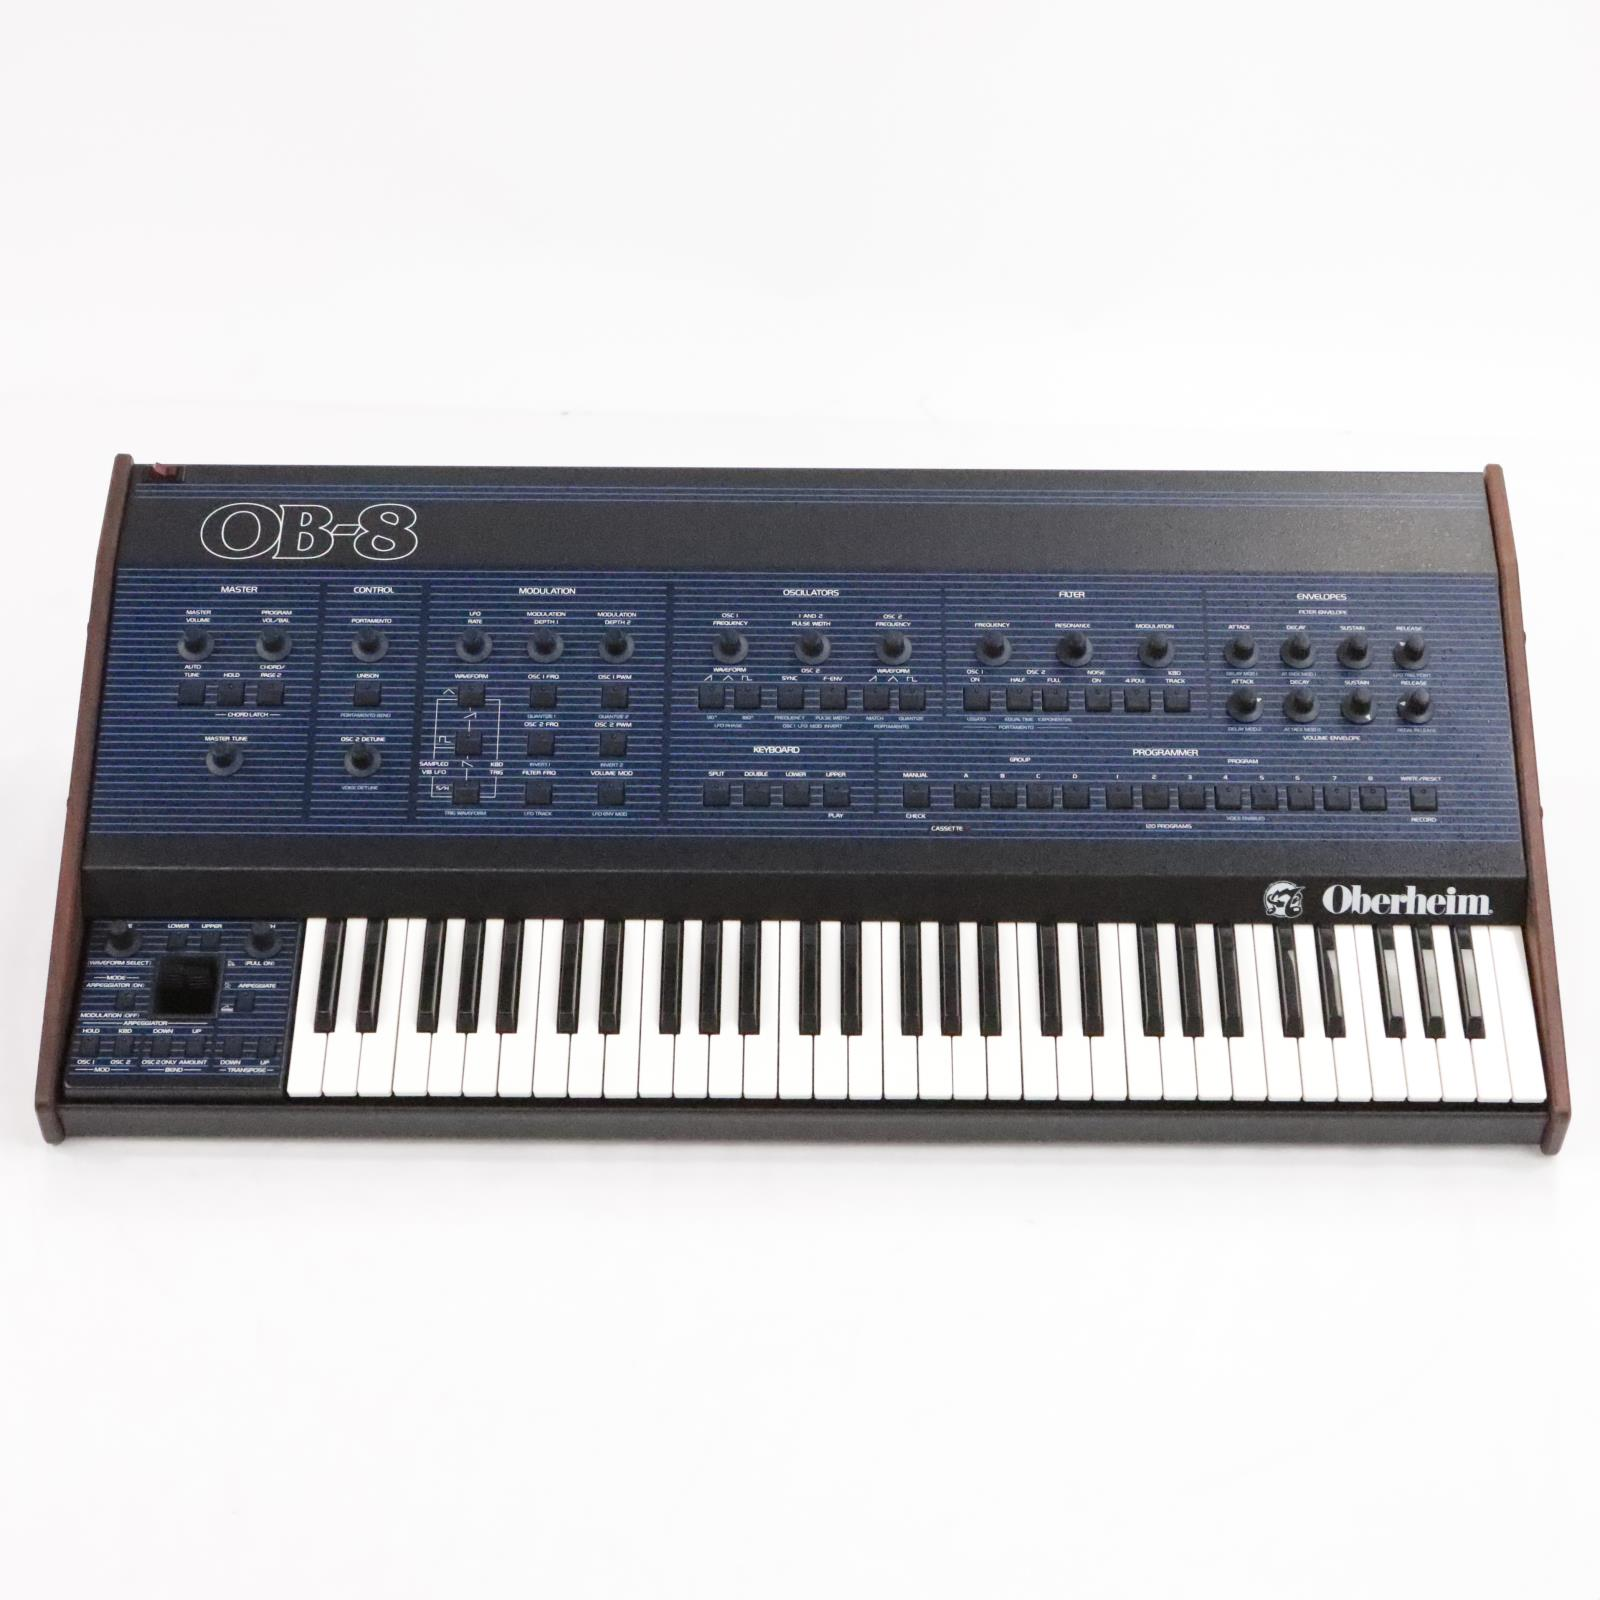 1984 Oberheim OB-8 Analog Synthesizer Synth w/ MIDI & Original Box #35216